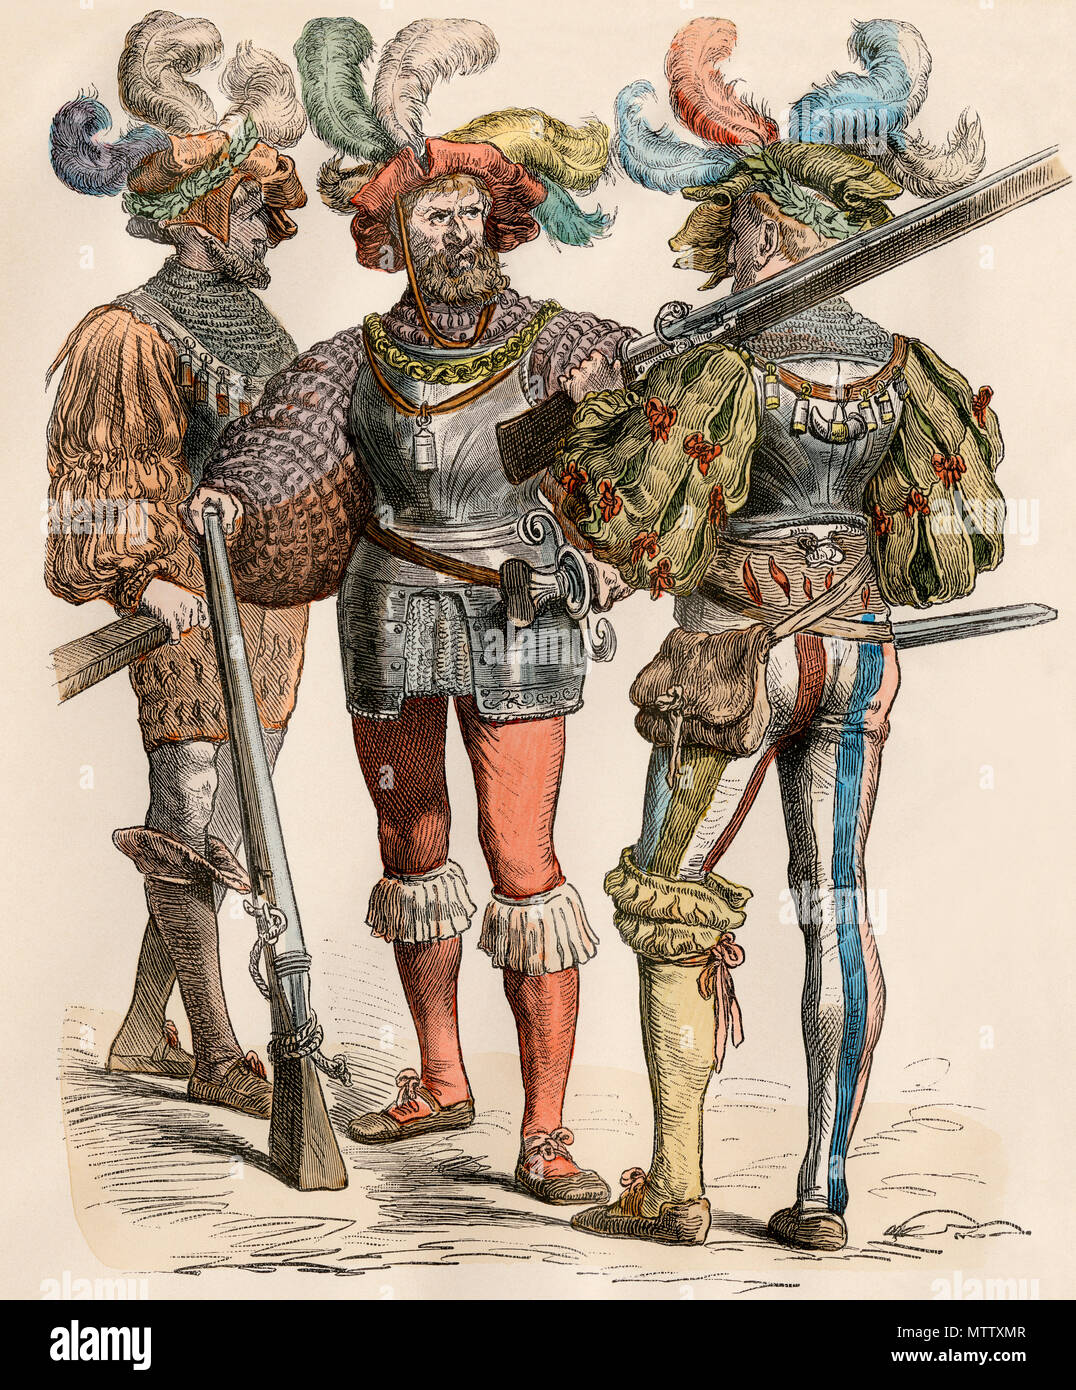 German country squire and his companions armed with muskets. Hand-colored print - Stock Image